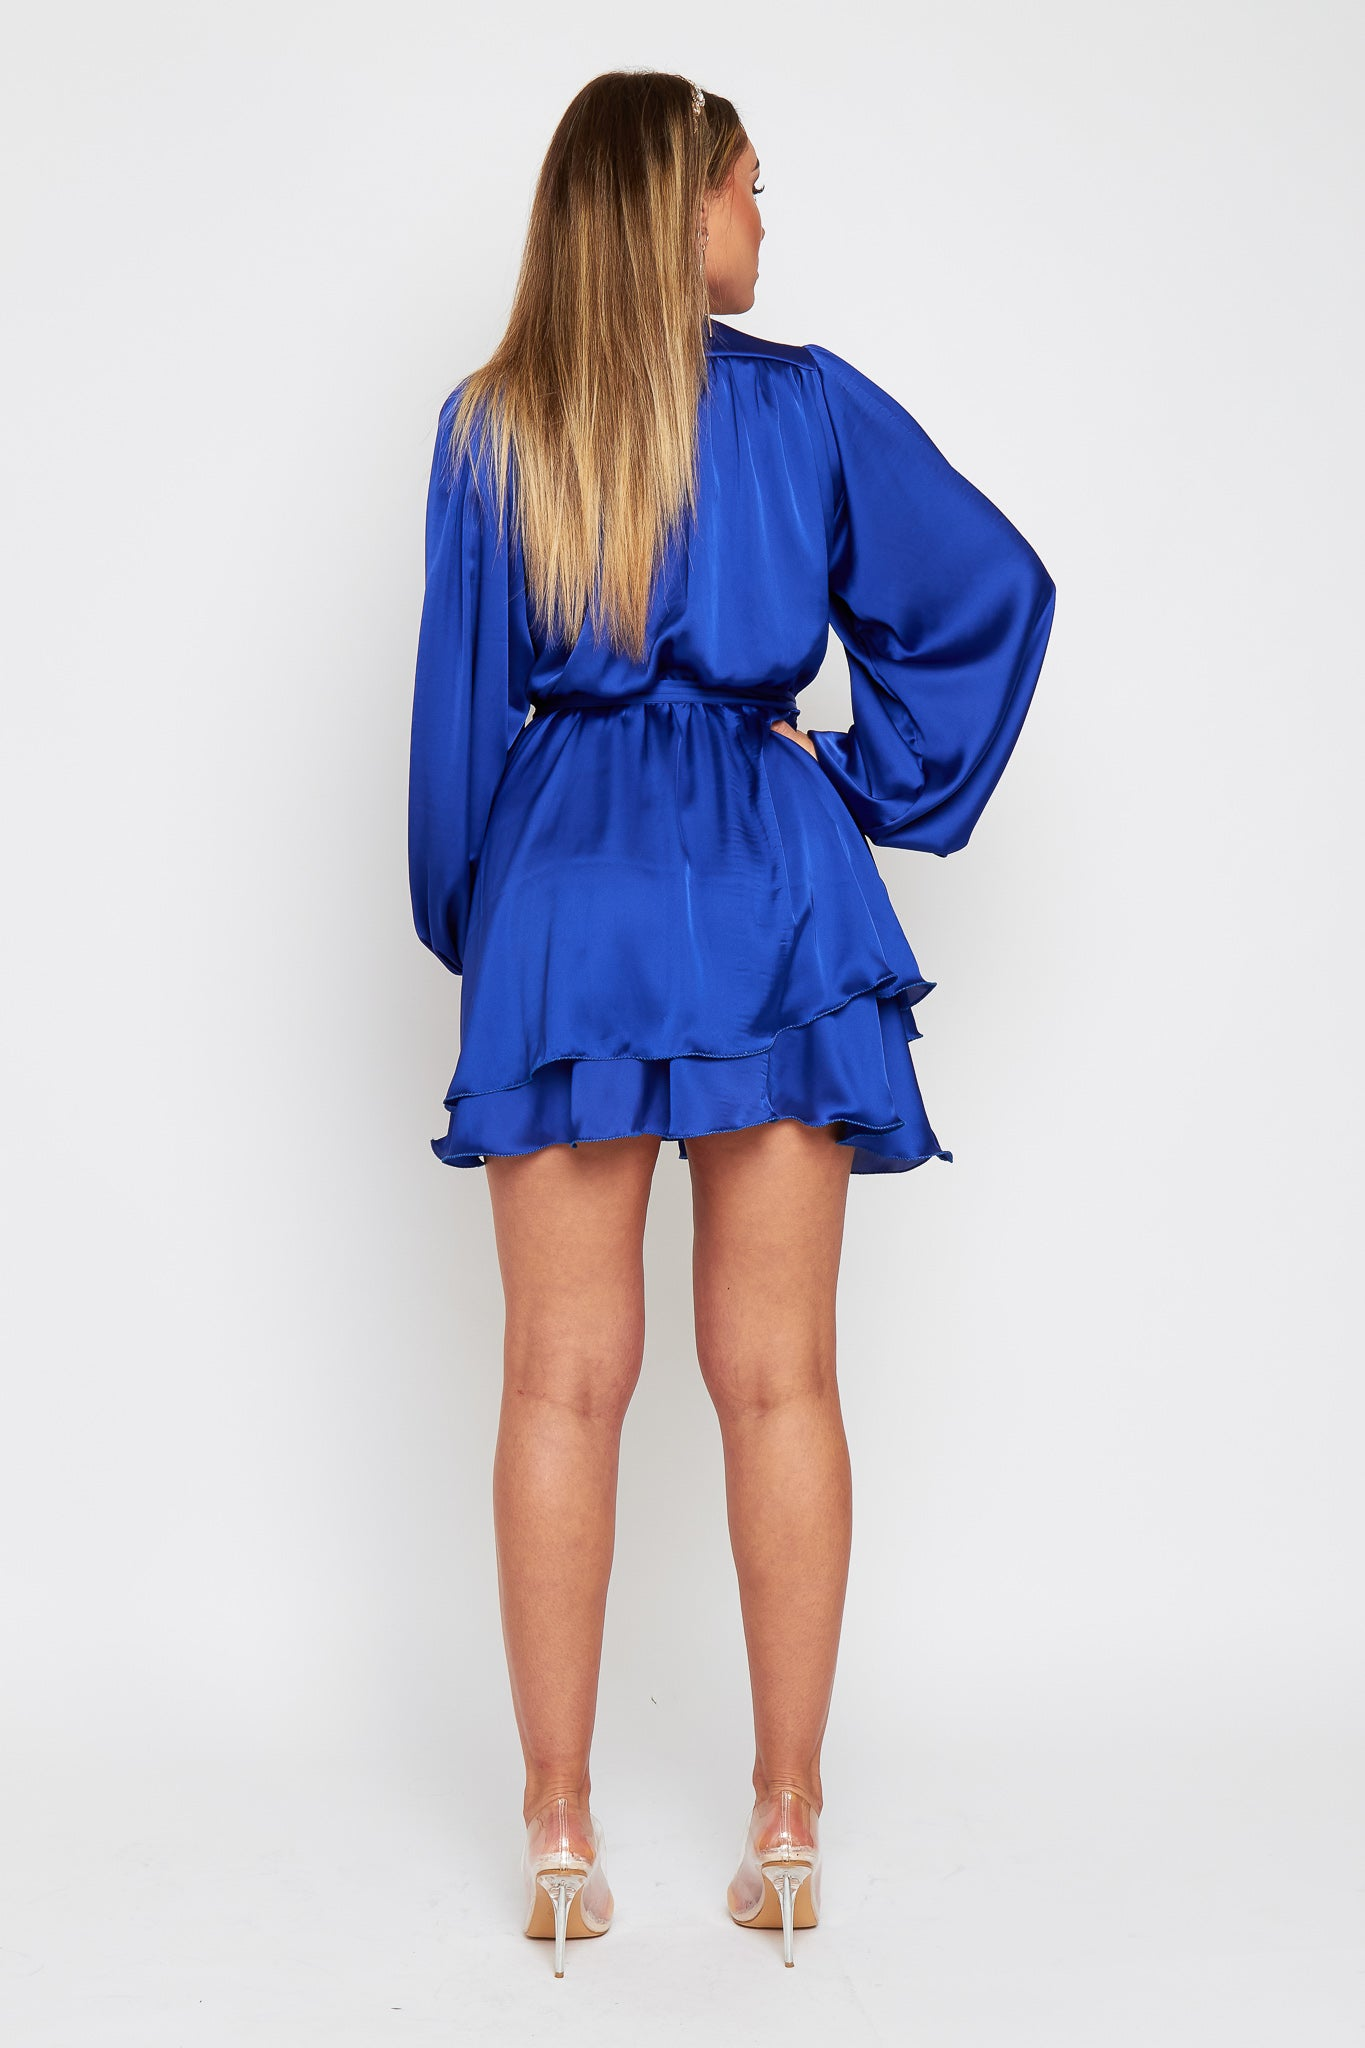 MADISON Electric Blue Silky Satin Oversized Sleeve Dress With Waist Tie